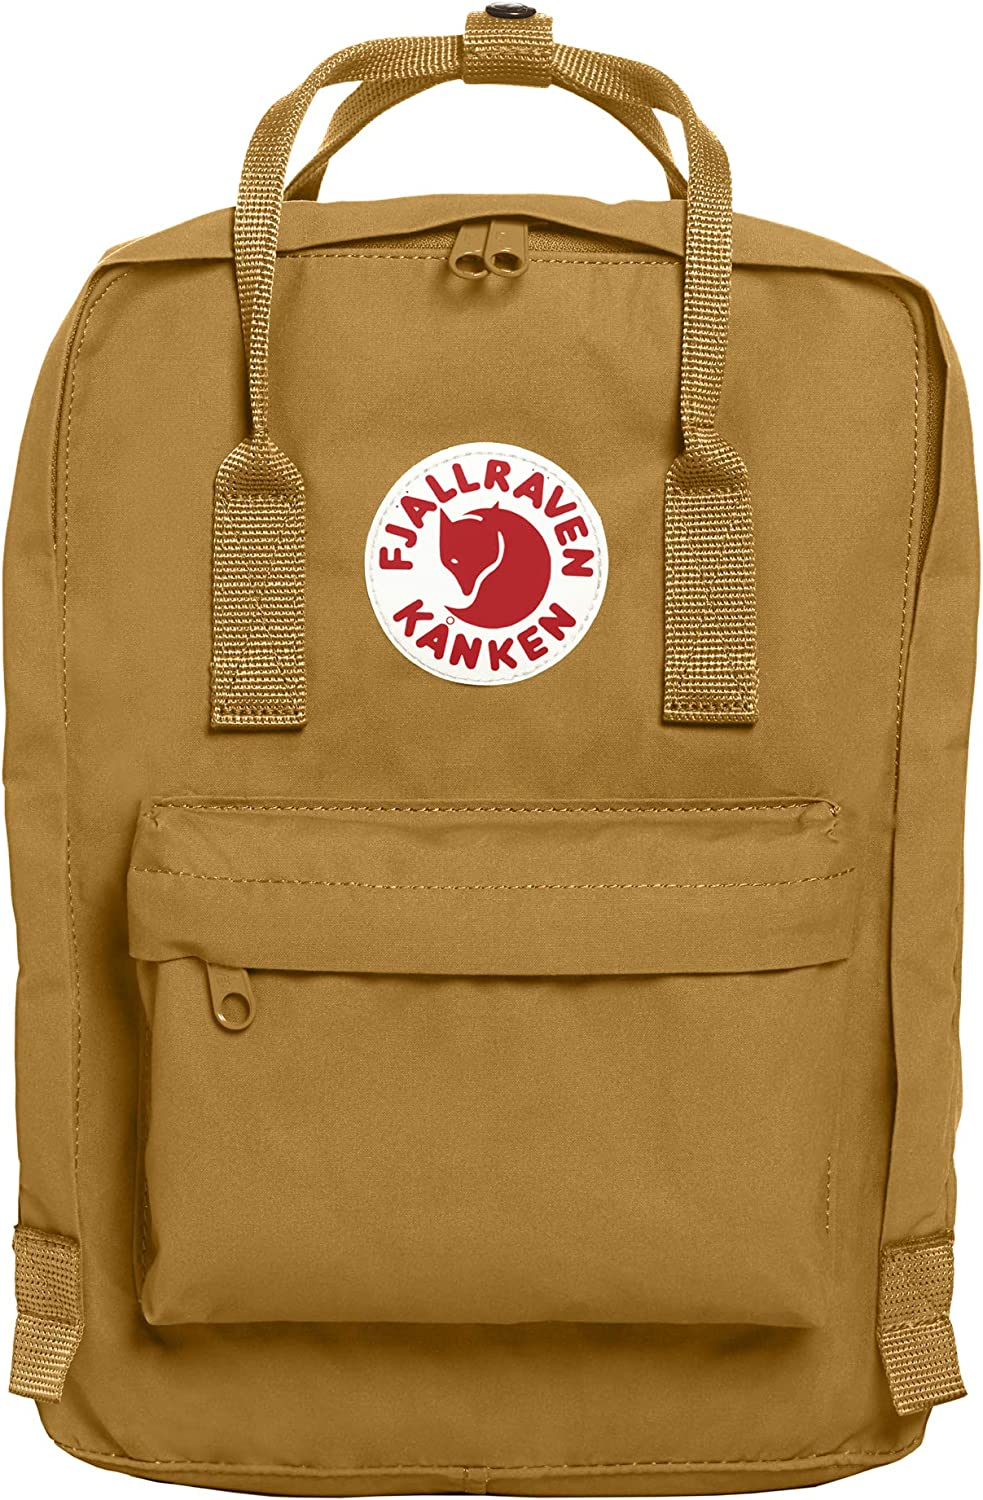 "Fjallraven, Kanken Laptop 13"" Backpack for Everyday"